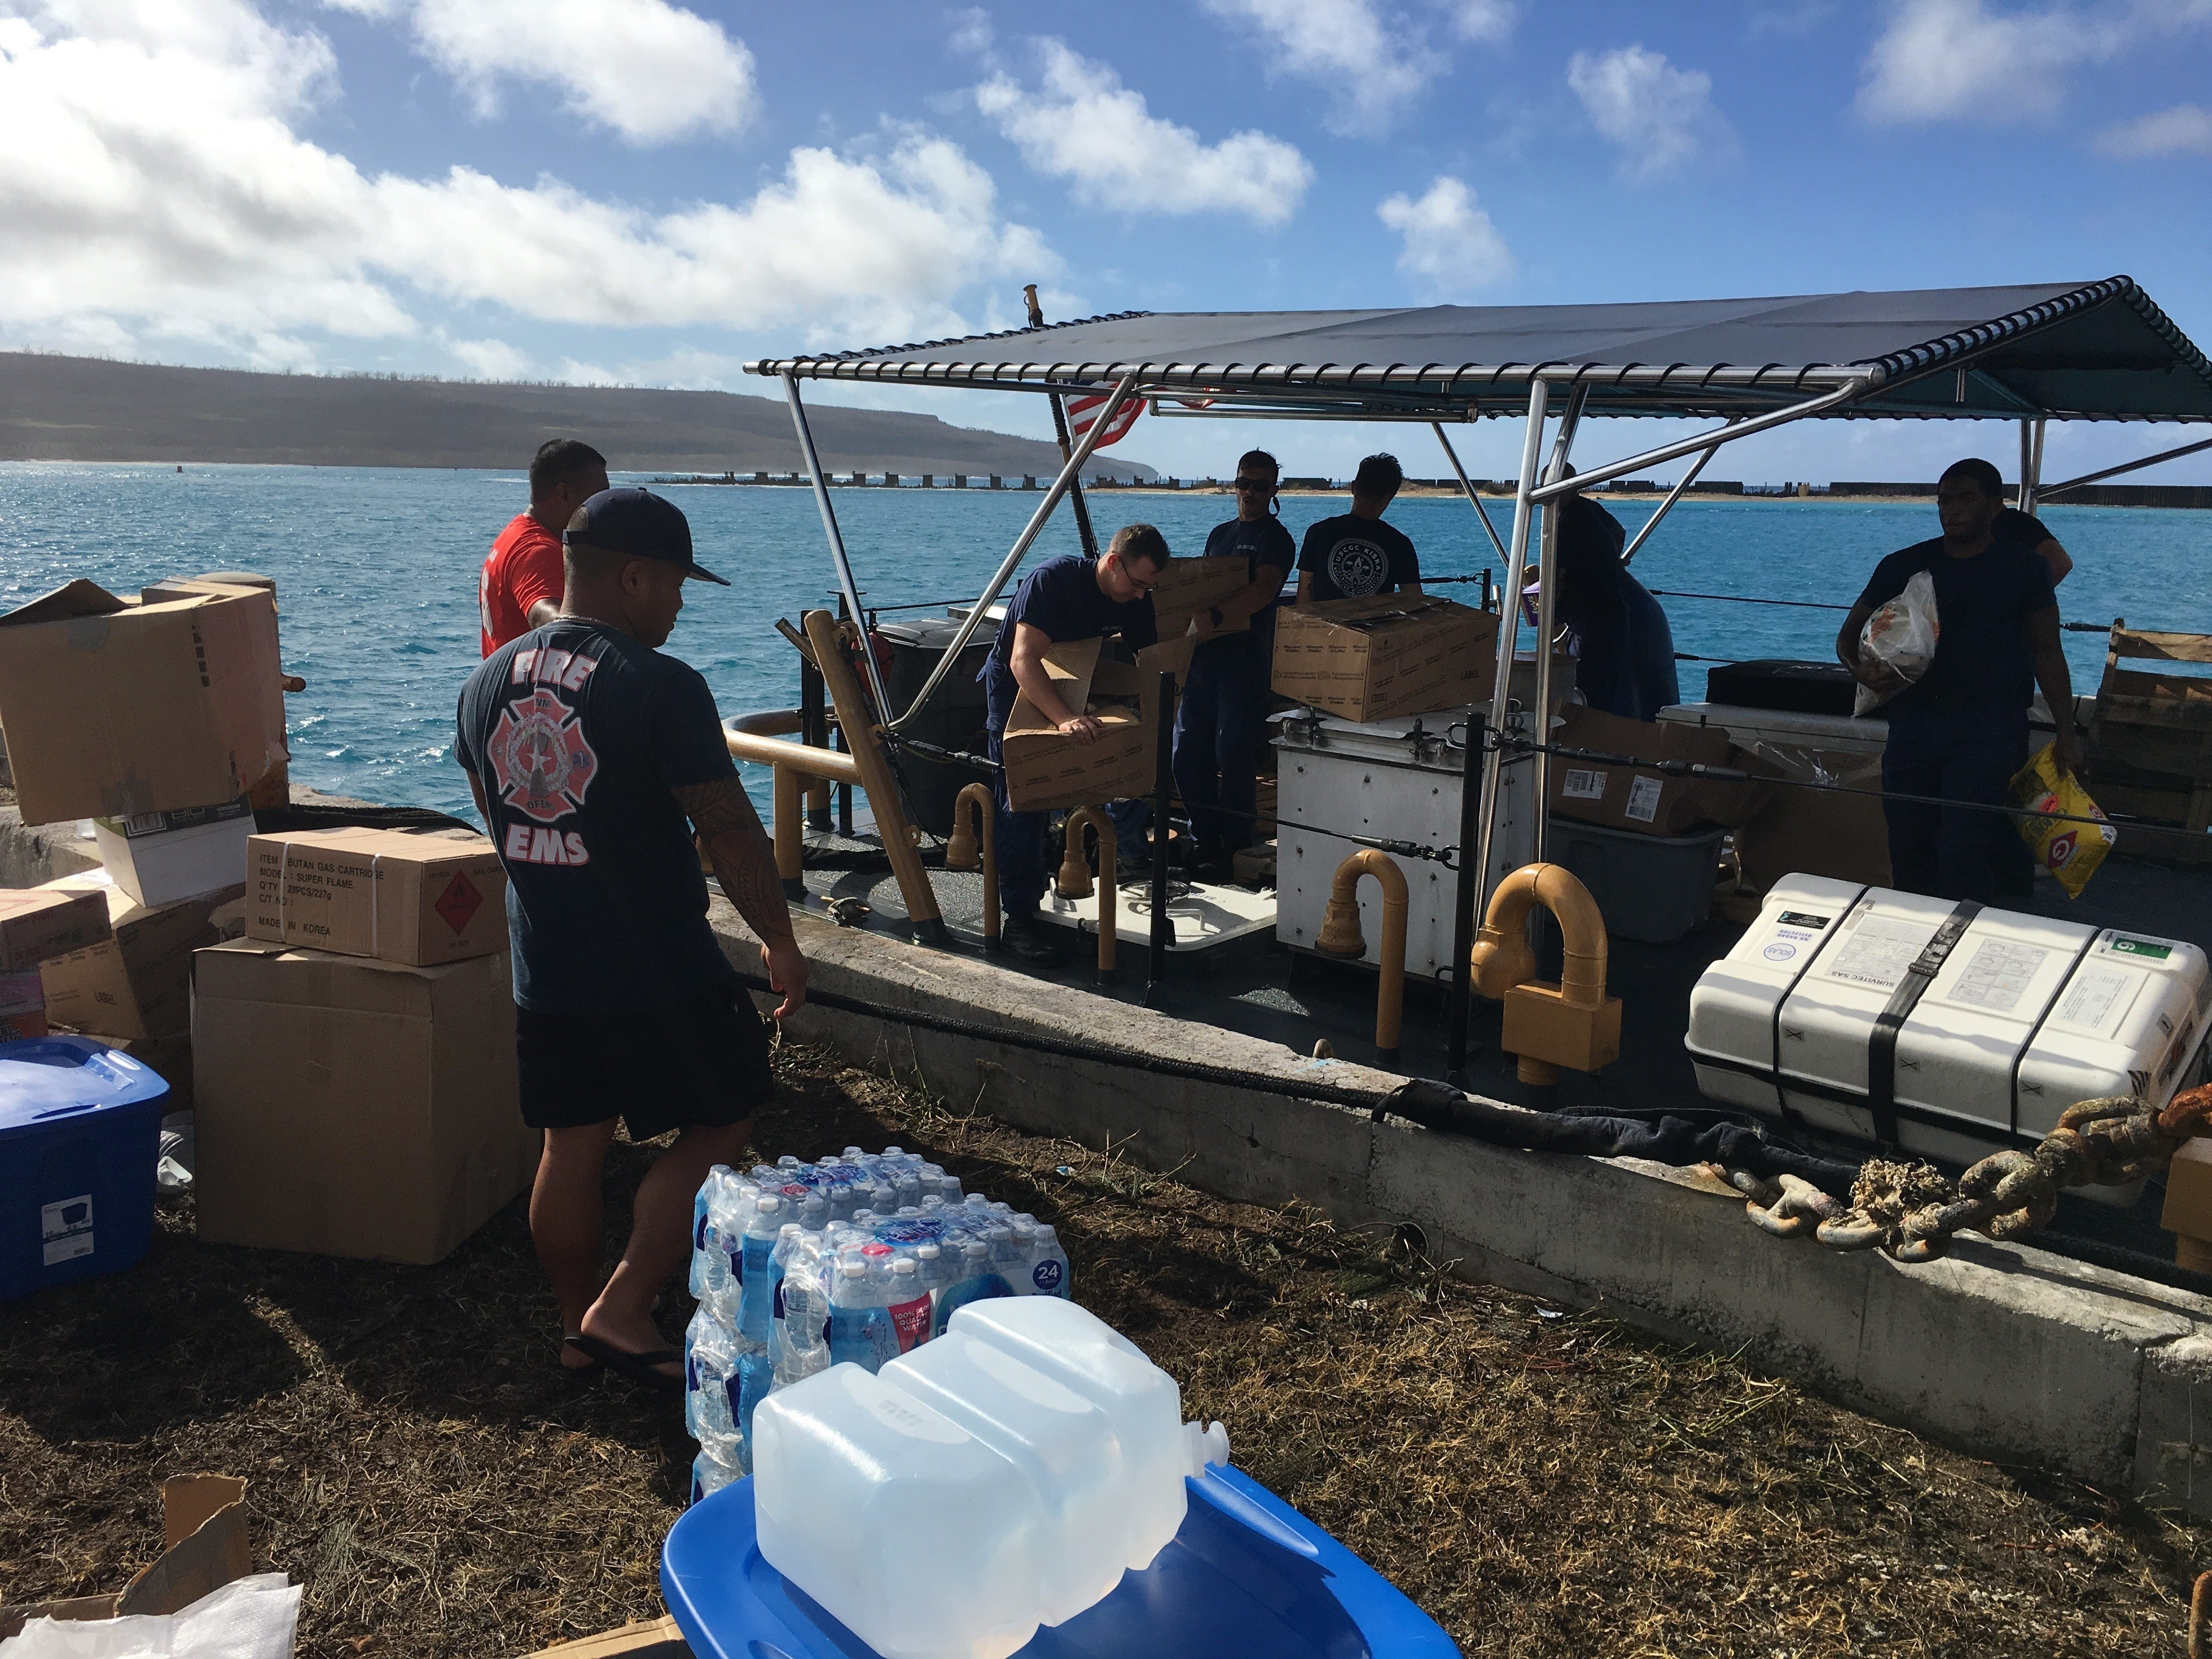 Crewmembers from U.S. Coast Guard Cutter Kiska (WPB 1336), based out of Guam, unload supplies in Saipan, Oct. 27, 2018.The crew will be transported donated goods from the community to those effected by Typhoon Yutu.